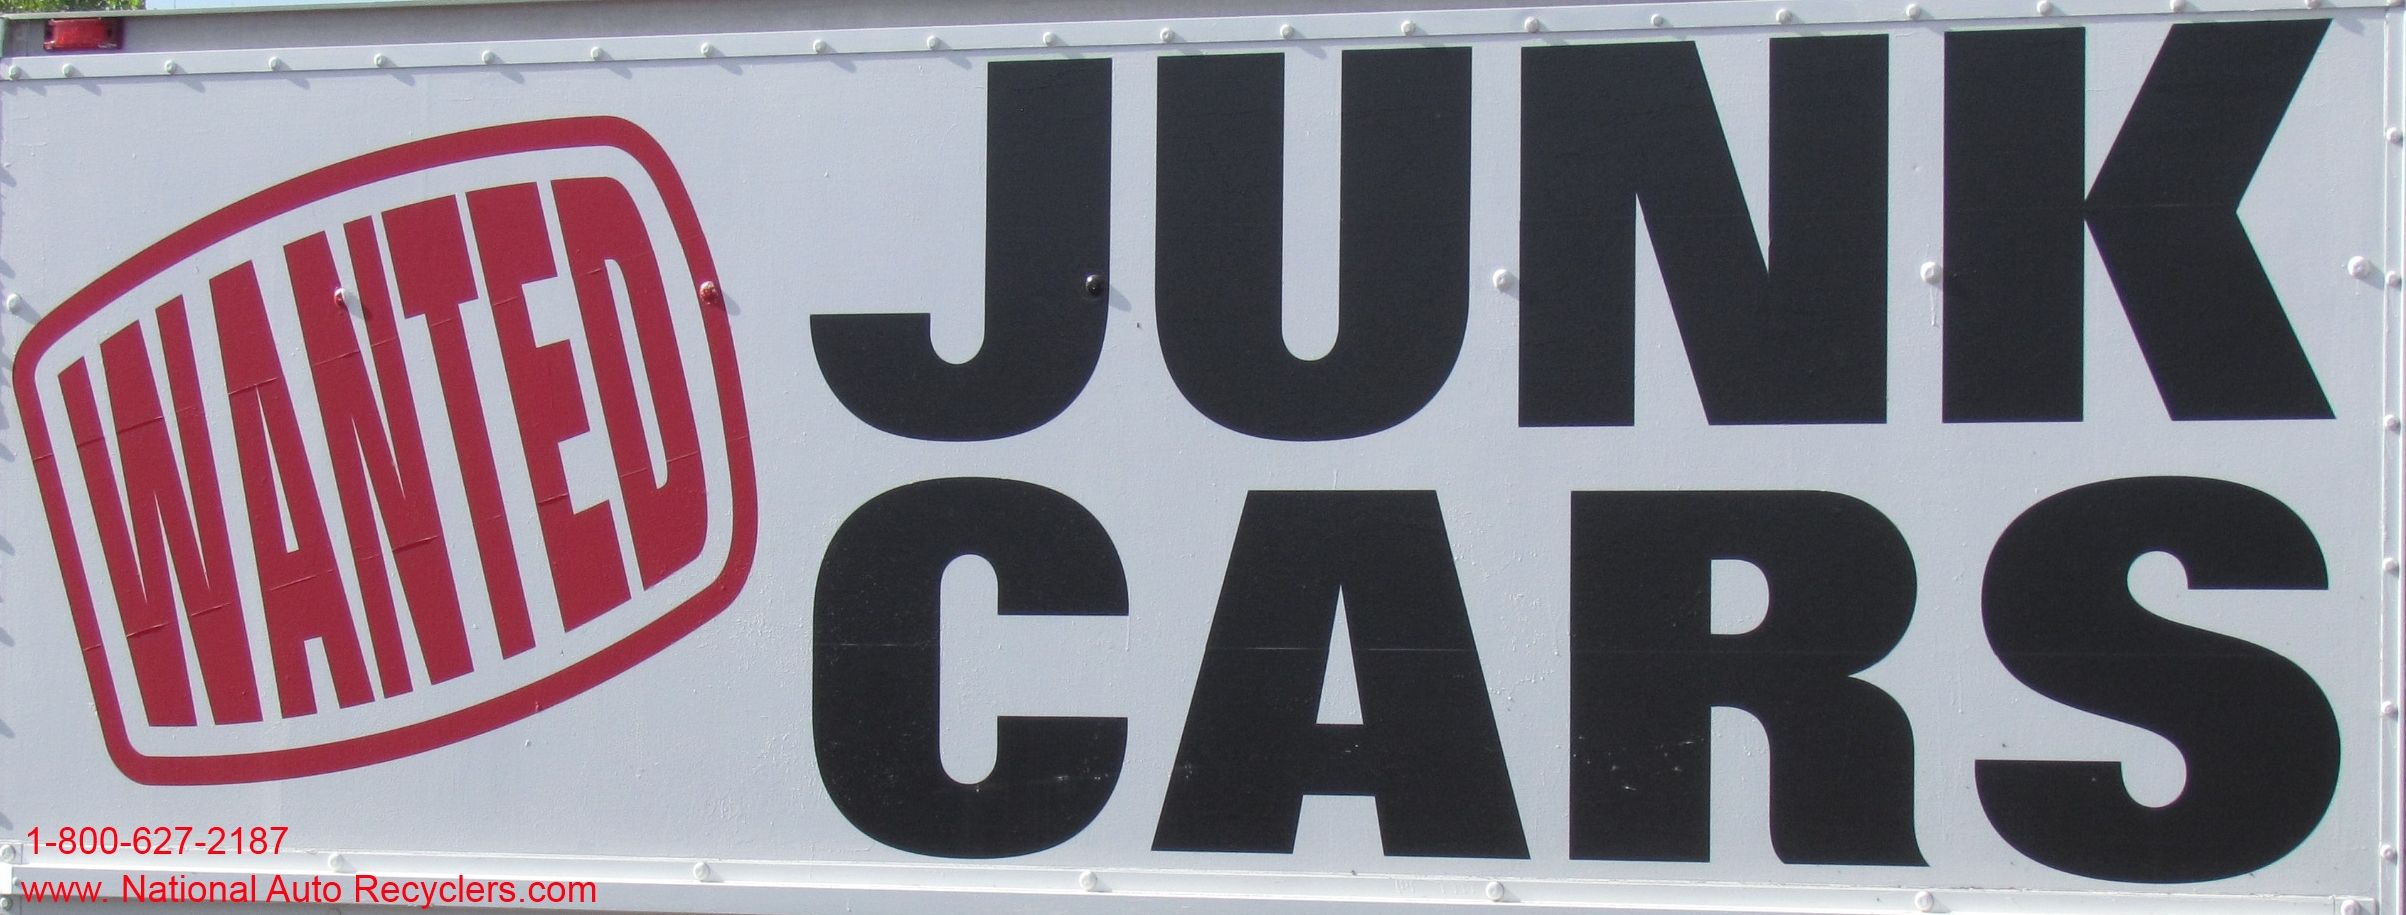 Junk that old car for extra cash for the holidays